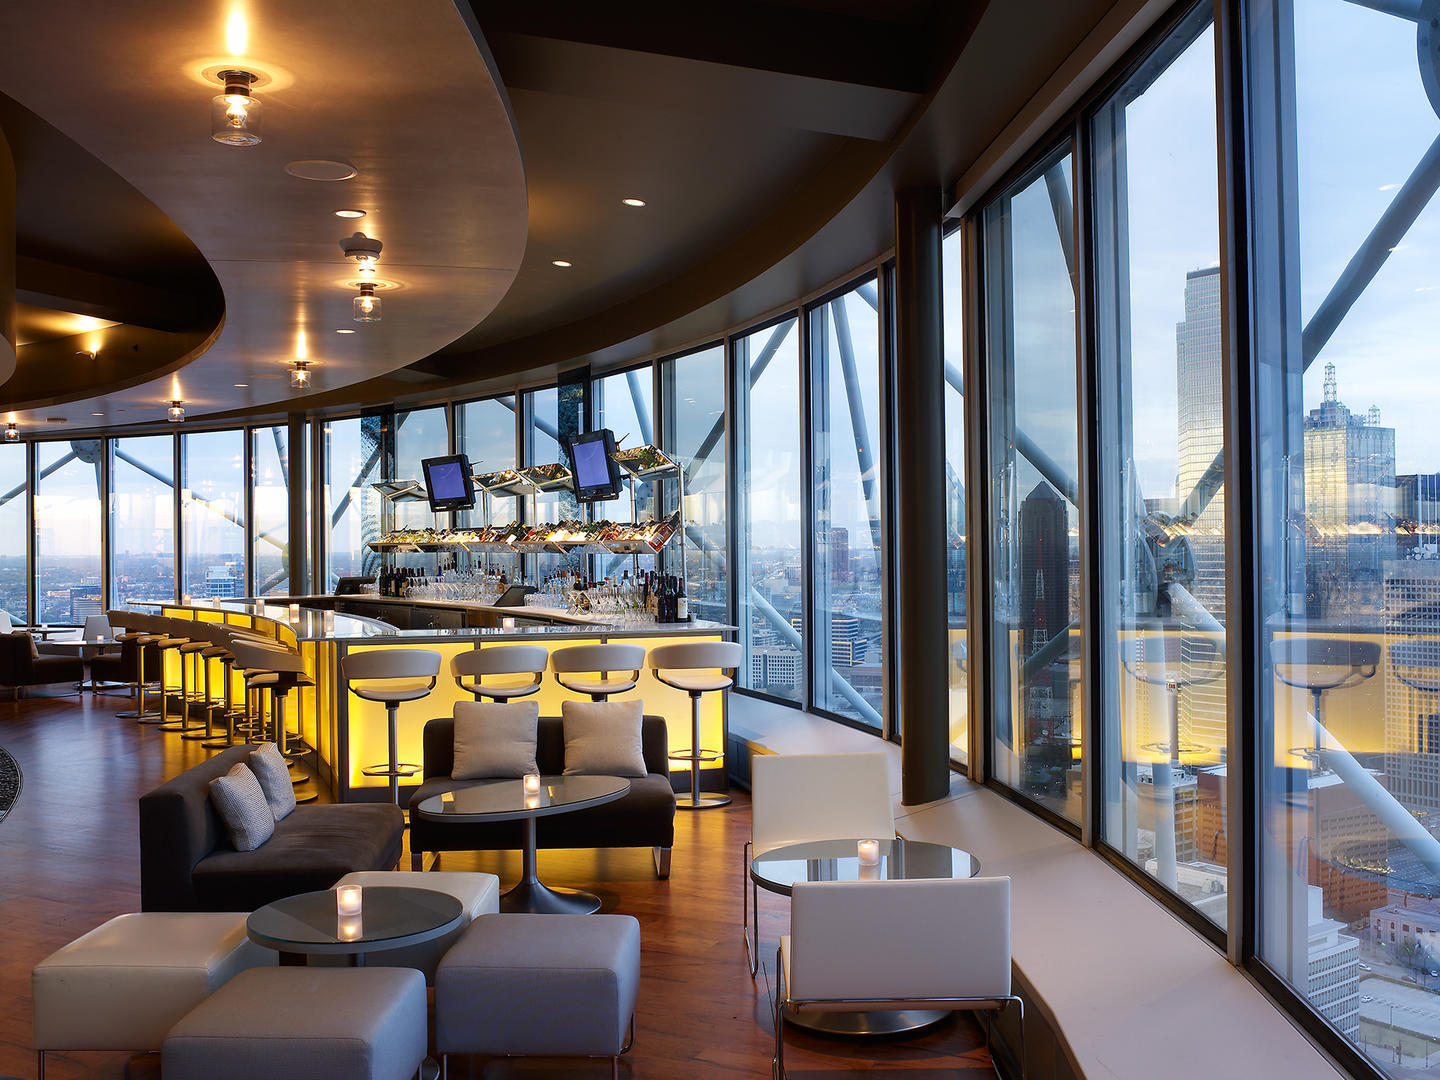 Five Sixty Makes The Top 100 Most Scenic Restaurants